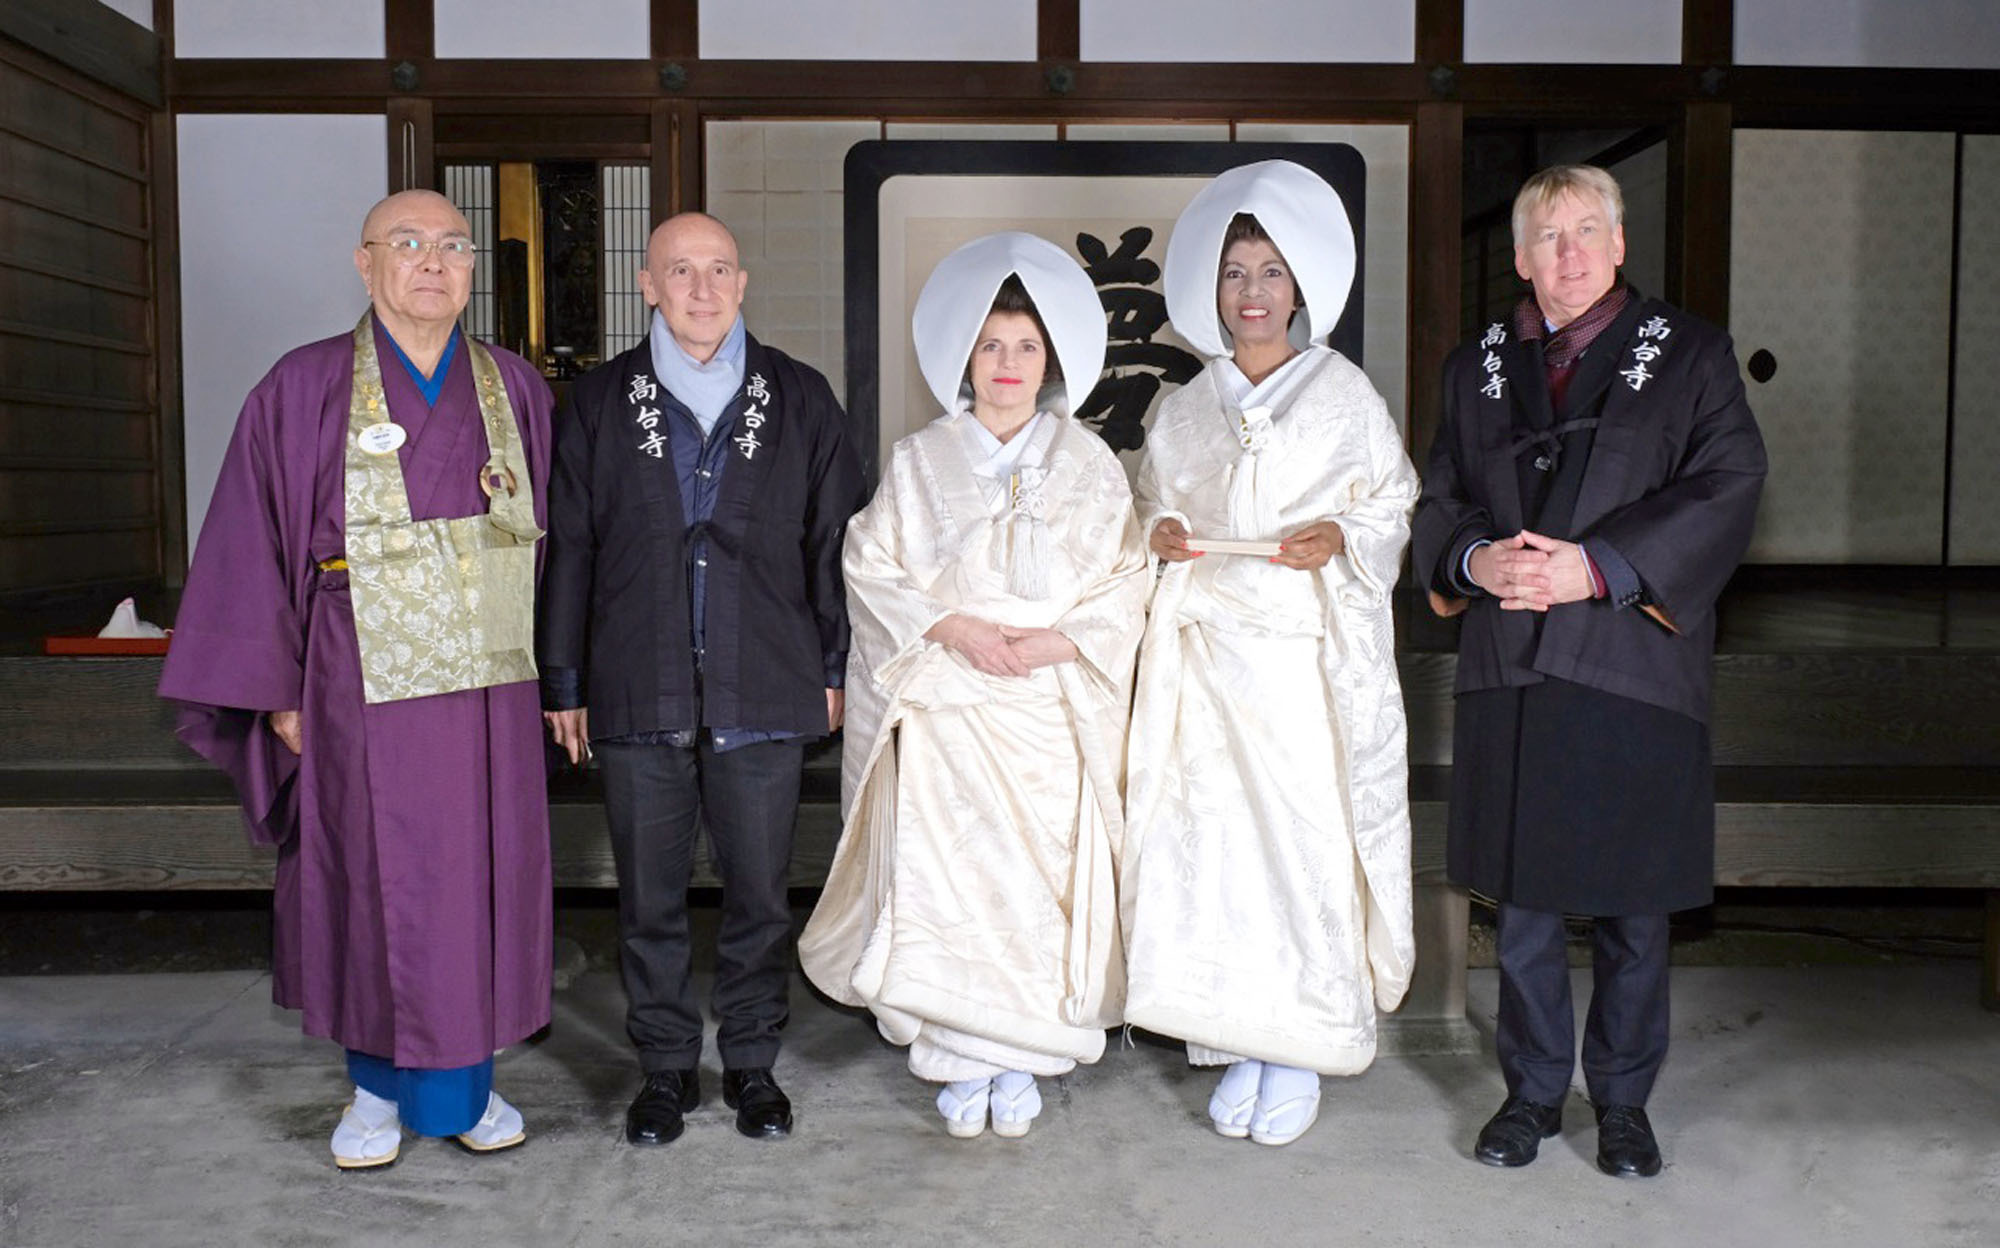 Kodaiji temple's head priest, Tensho Goto (left), poses with Italian Ambassador Giorgio Starace (second from left) and his wife, Matelda (center), and Belgian Ambassador Gunther Sleeuwagen (right) and his wife, Rahel Zewdie, during the Kitsune no Yomeiri (The Fox's Wedding) parade in Kyoto's Higashiyama district. |  TAKAHIRO HAYASHI